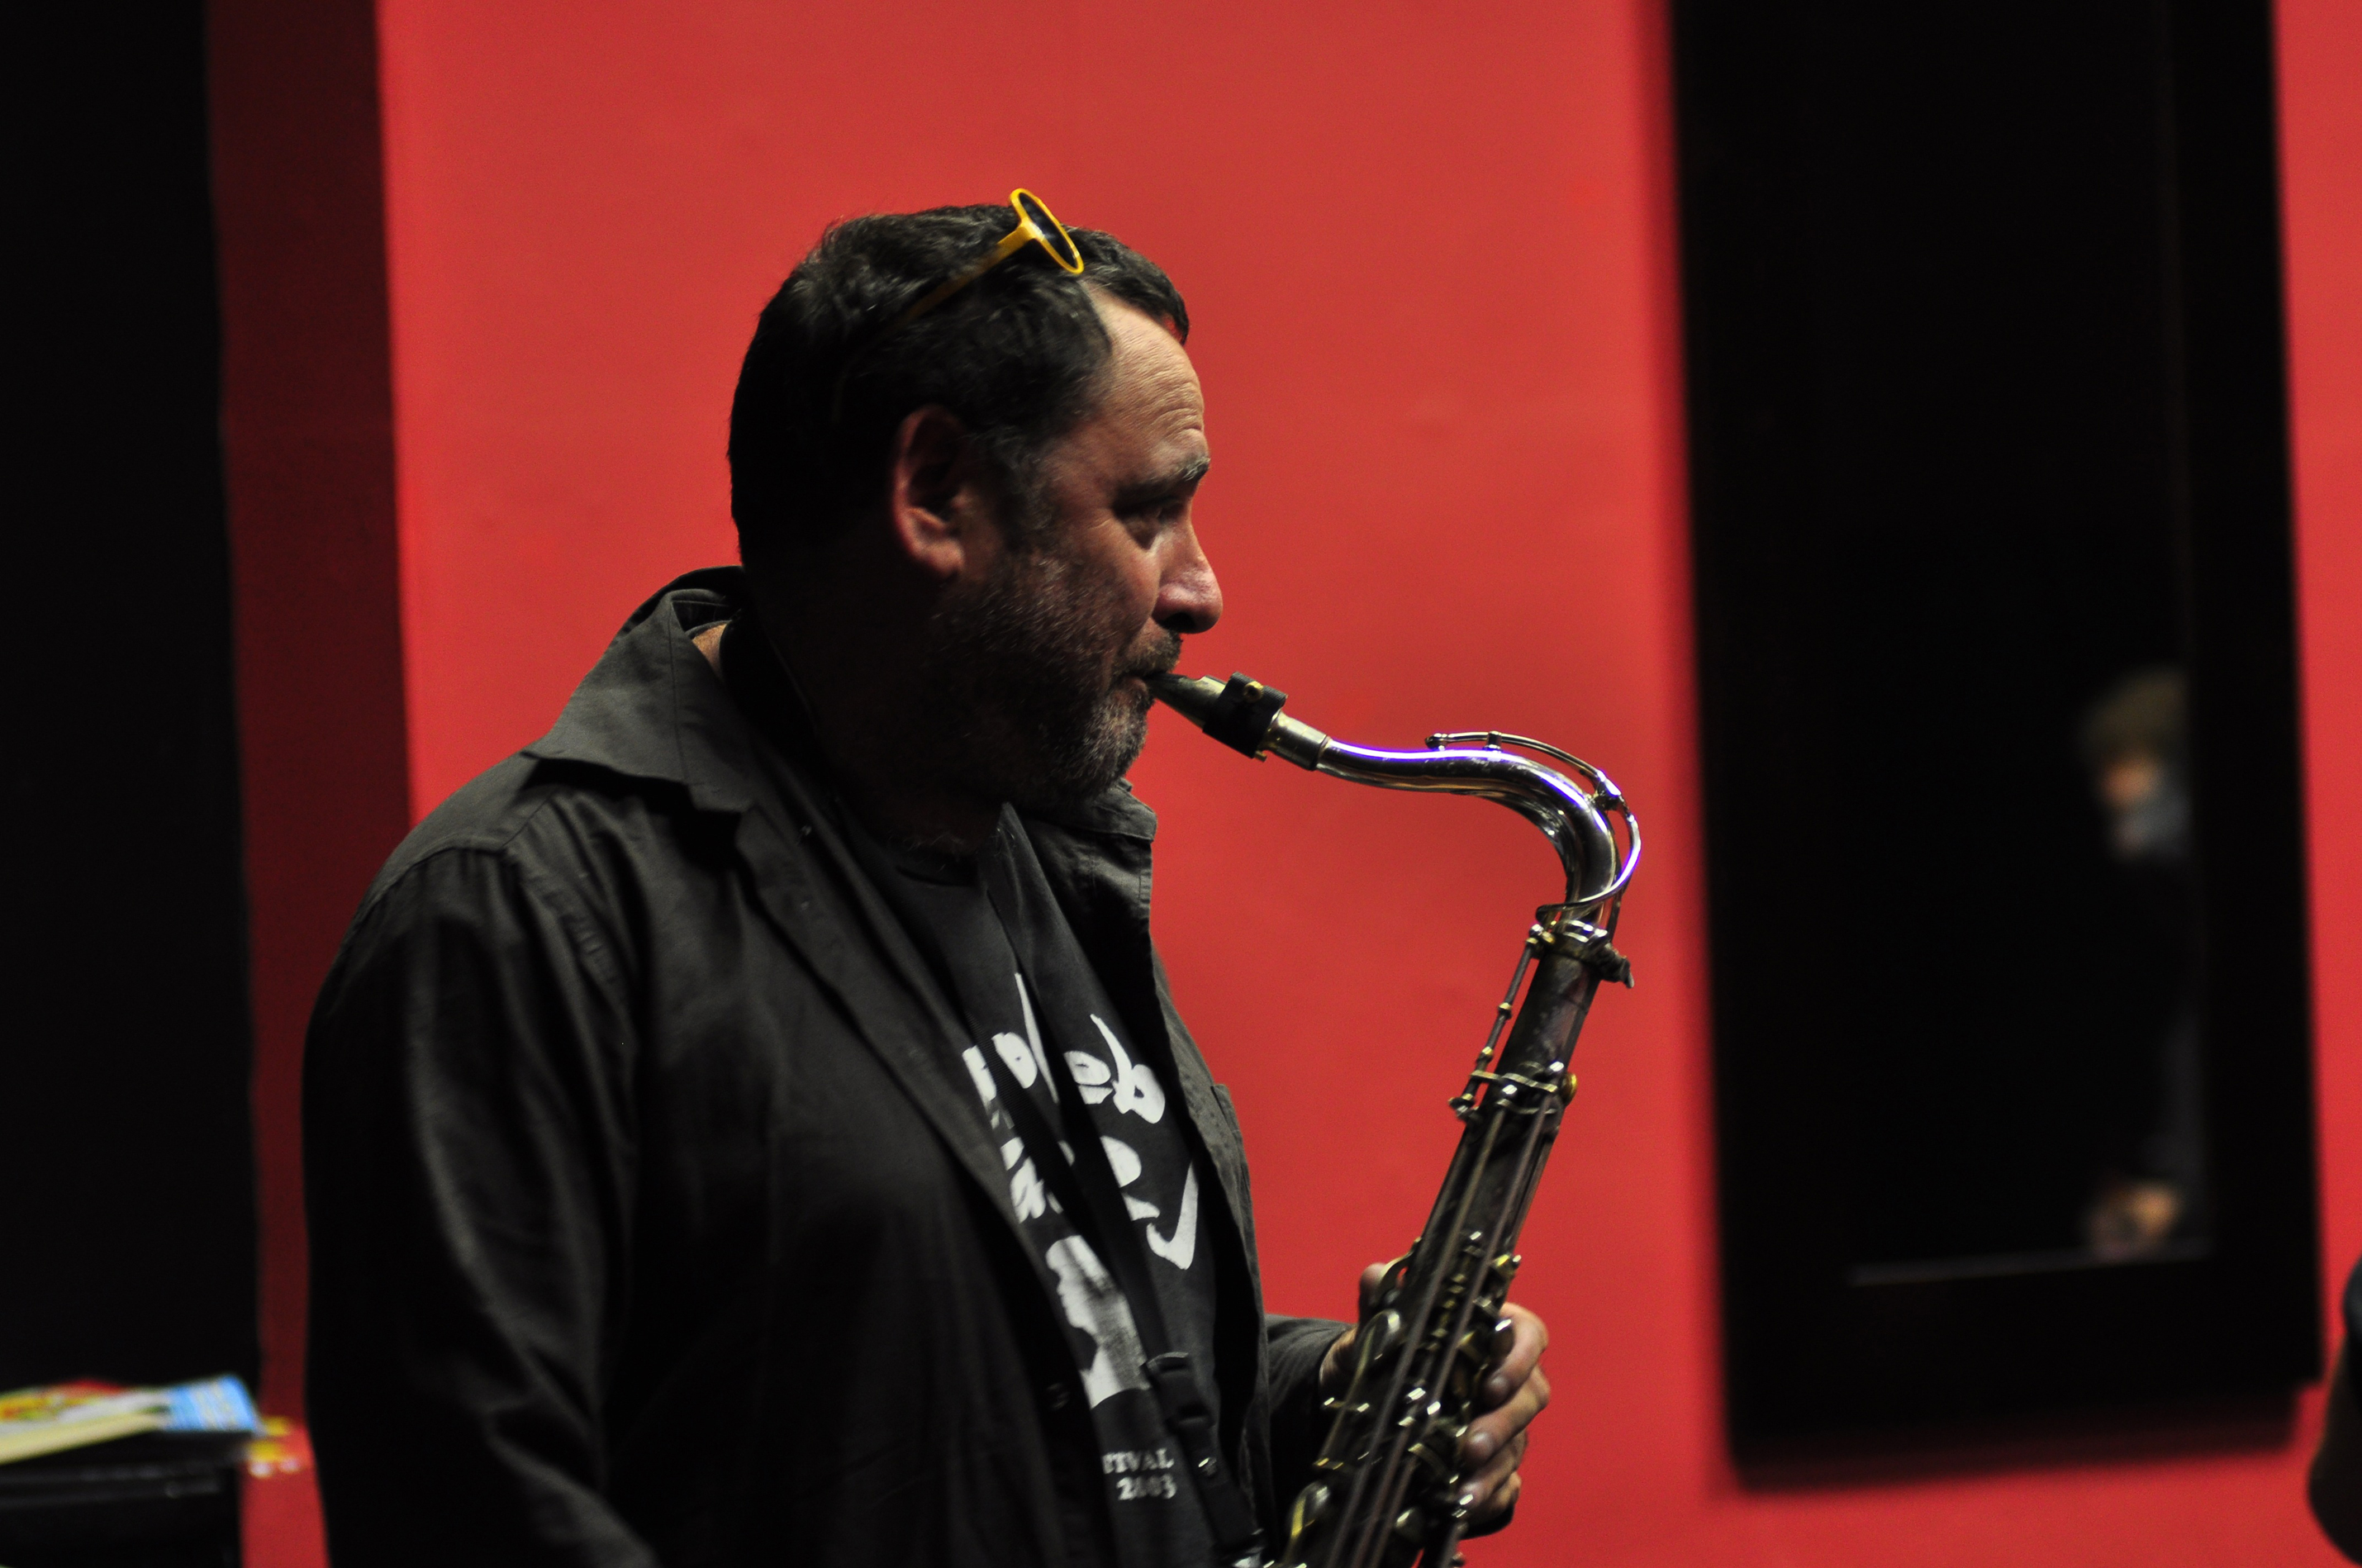 Gilad Atzmon, the Writer Jazzman